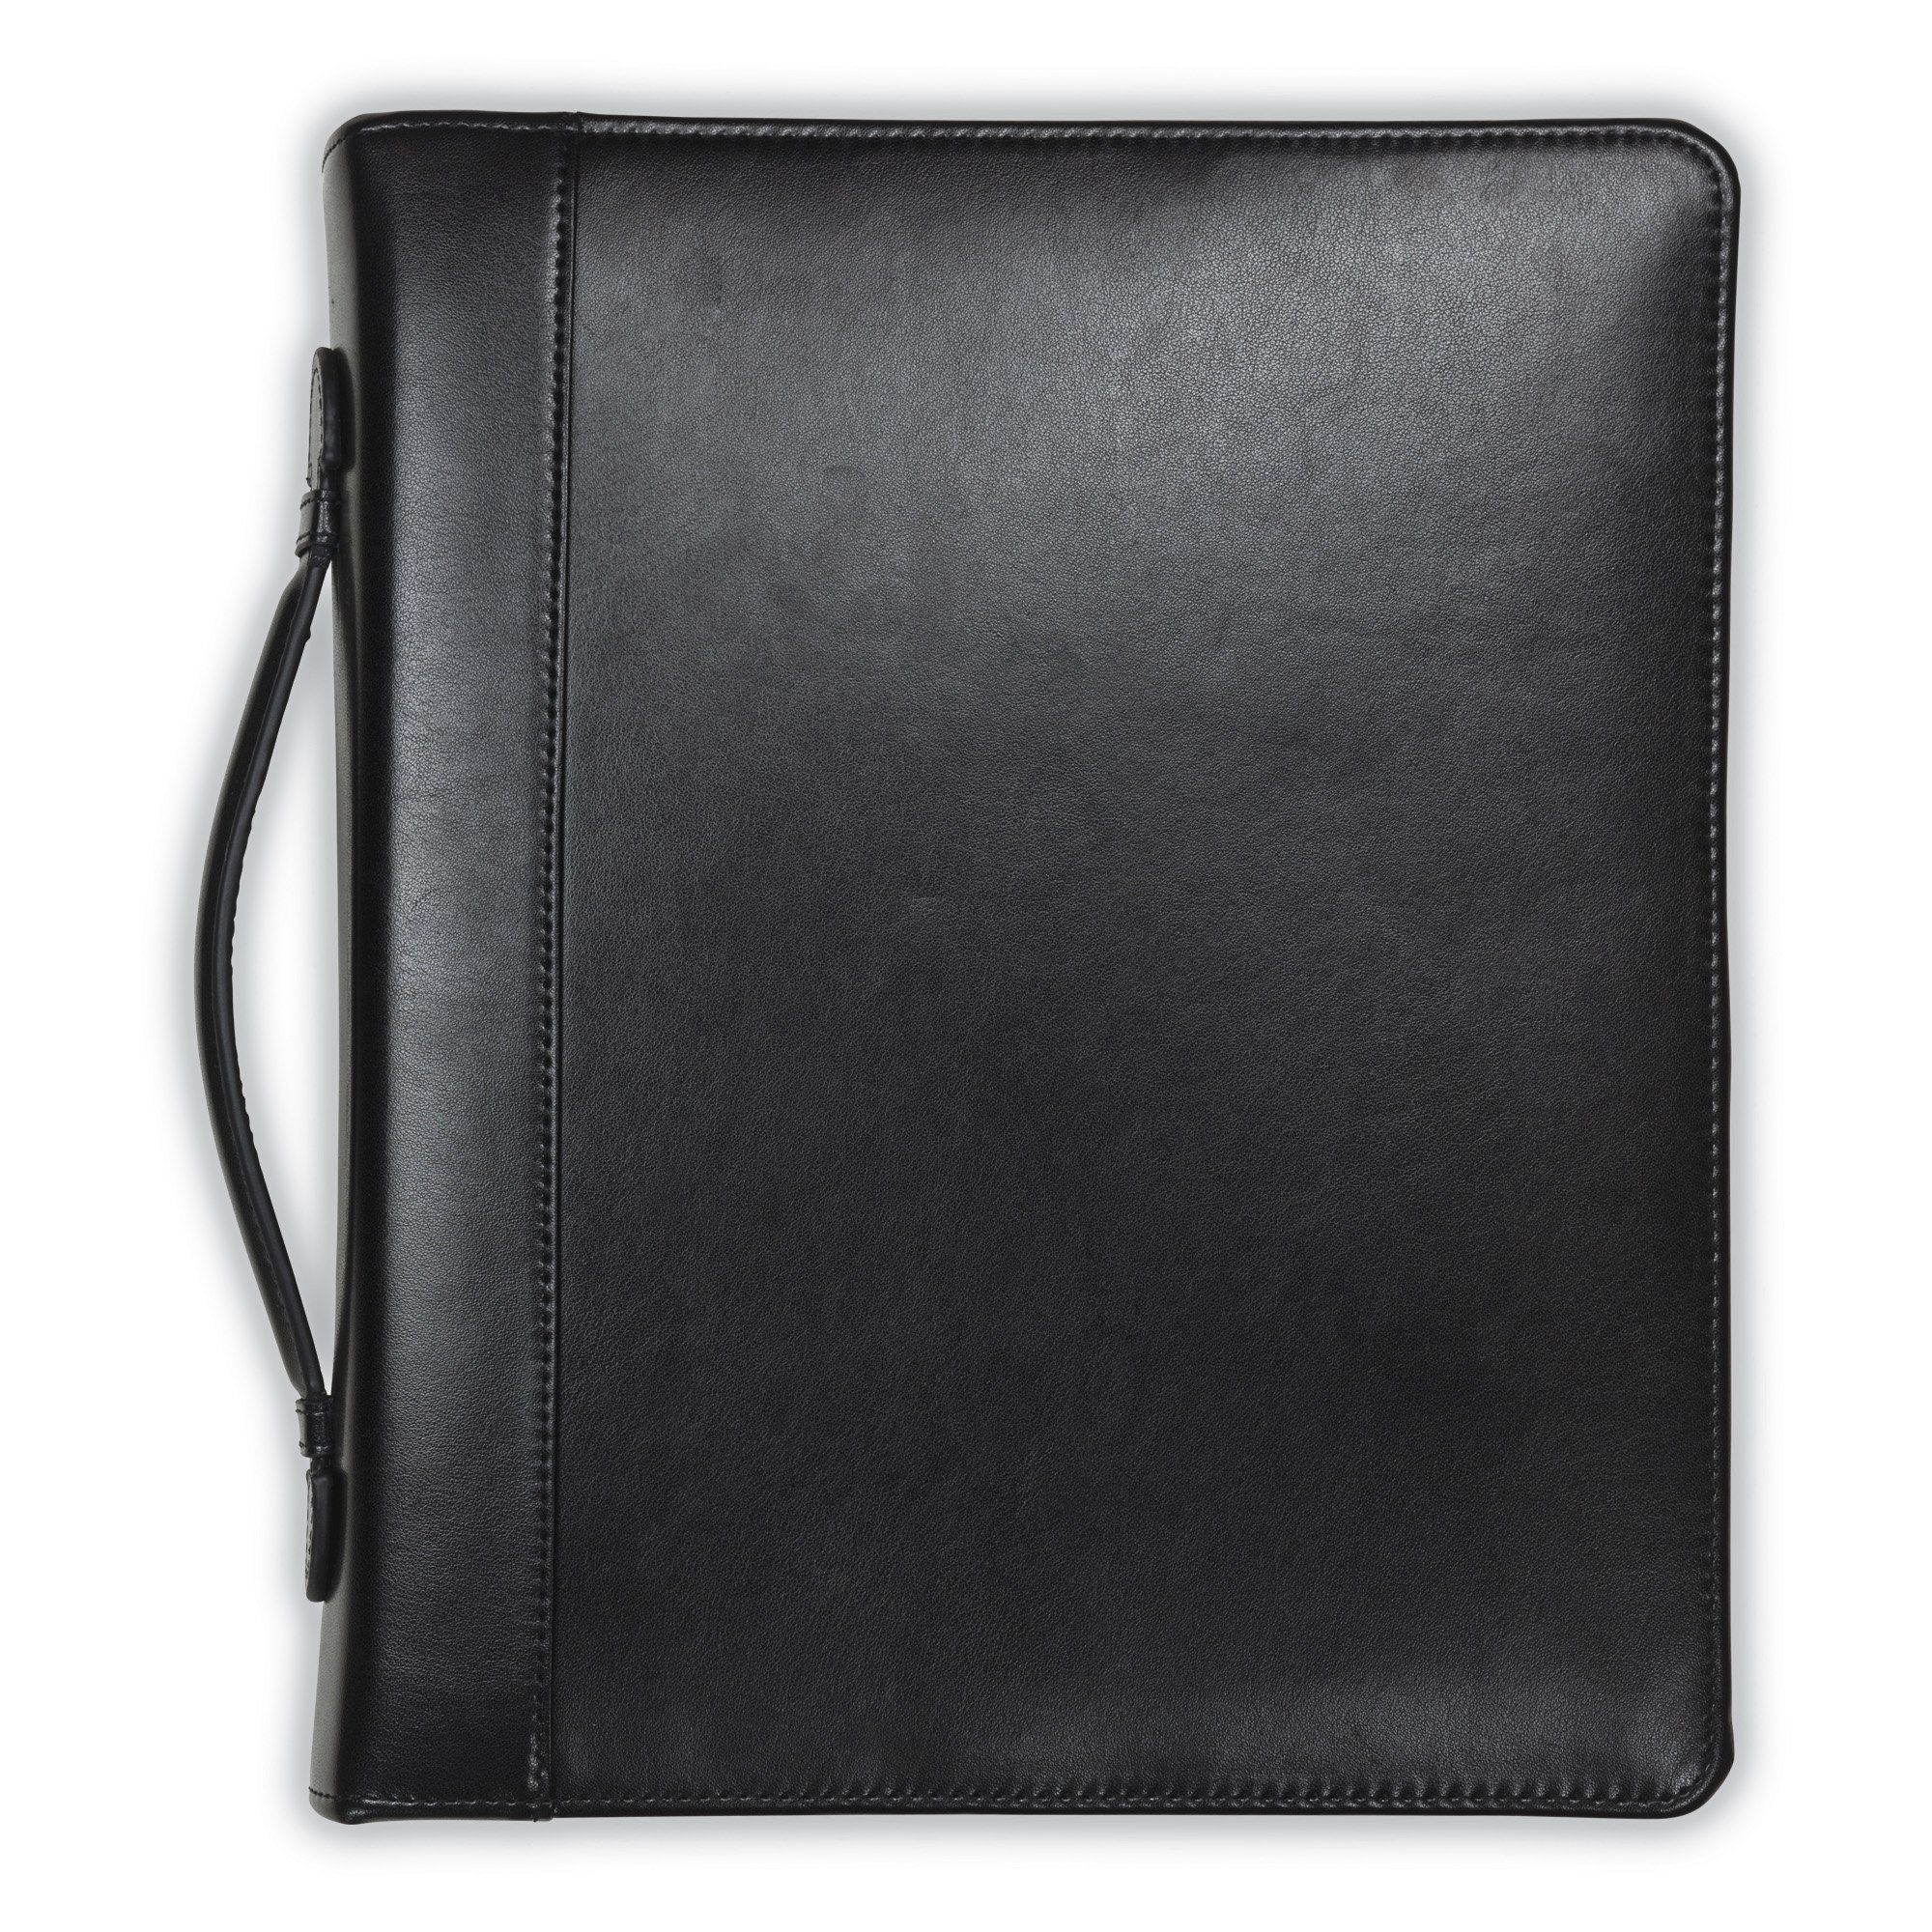 Samsill Regal Leather Padfolio Zipper 1 inch Ring Binder, Carry Handle, Interior 10.1 Inch Tablet Sleeve, Letter Size Writing Pad, Black by Samsill